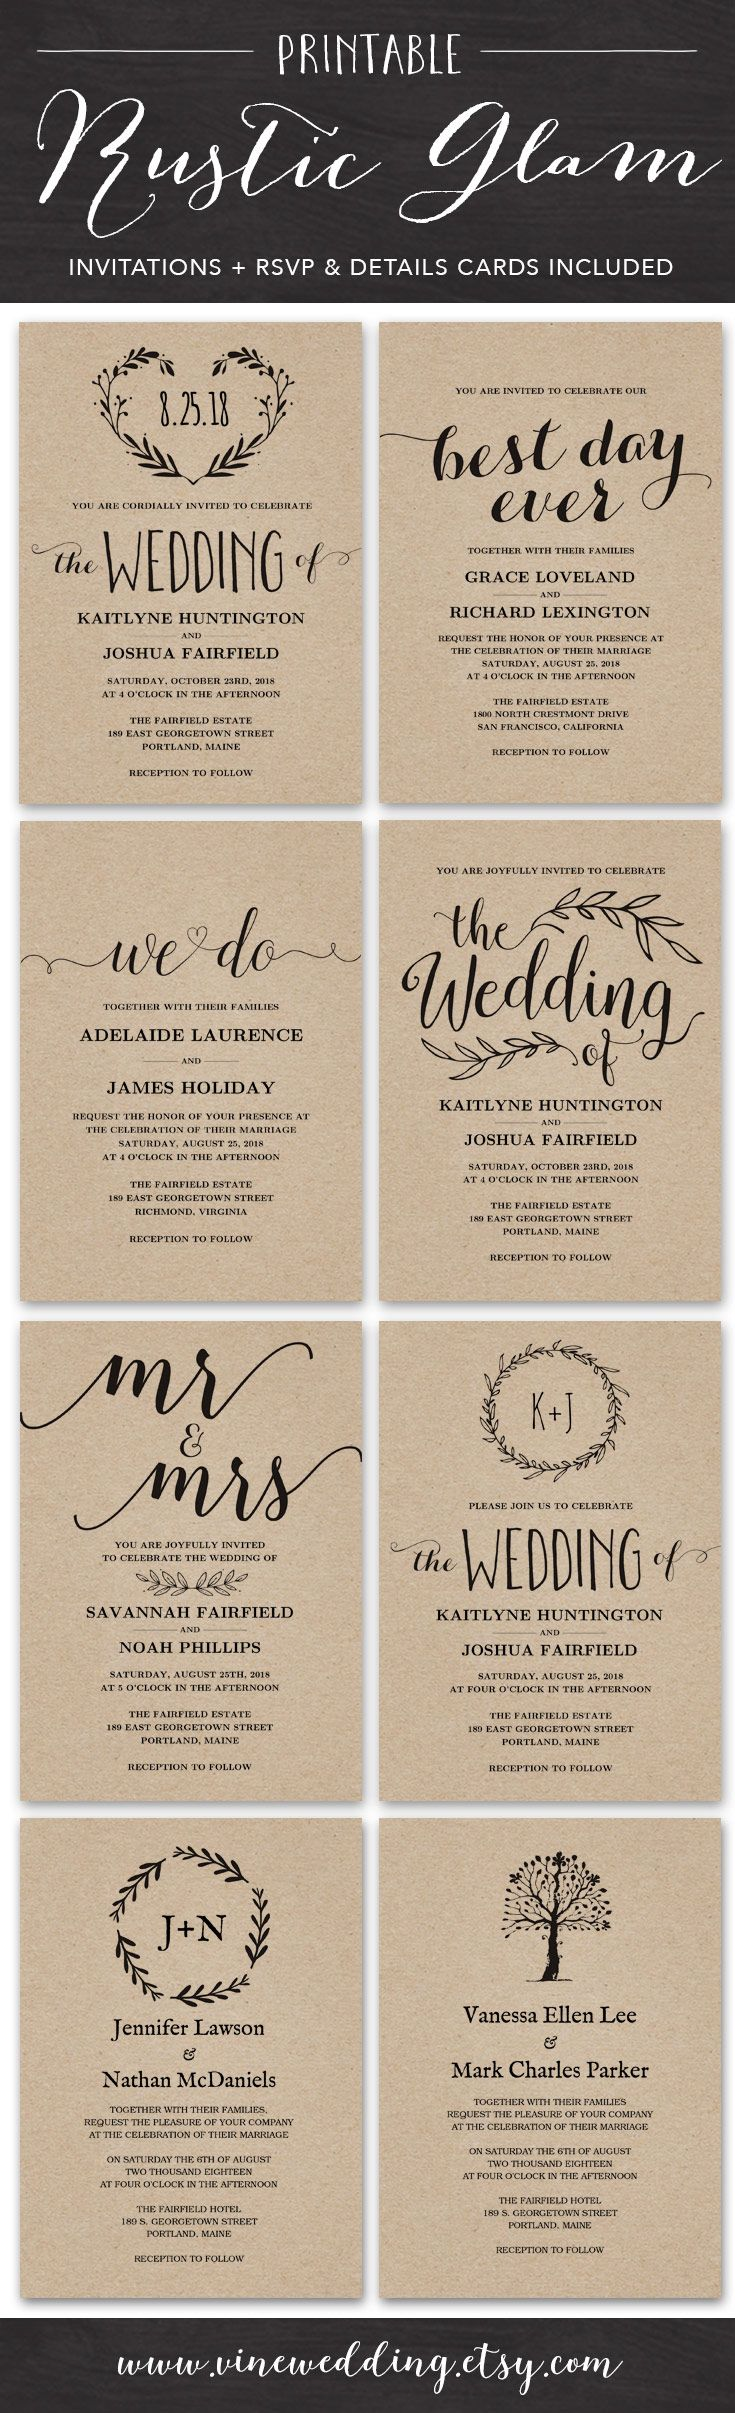 wedding invitation email free%0A Free Invitation Templates that can be customized and printed to create DIY  rustic wedding invitations   http   www cardsandpockets com freeweddingi u